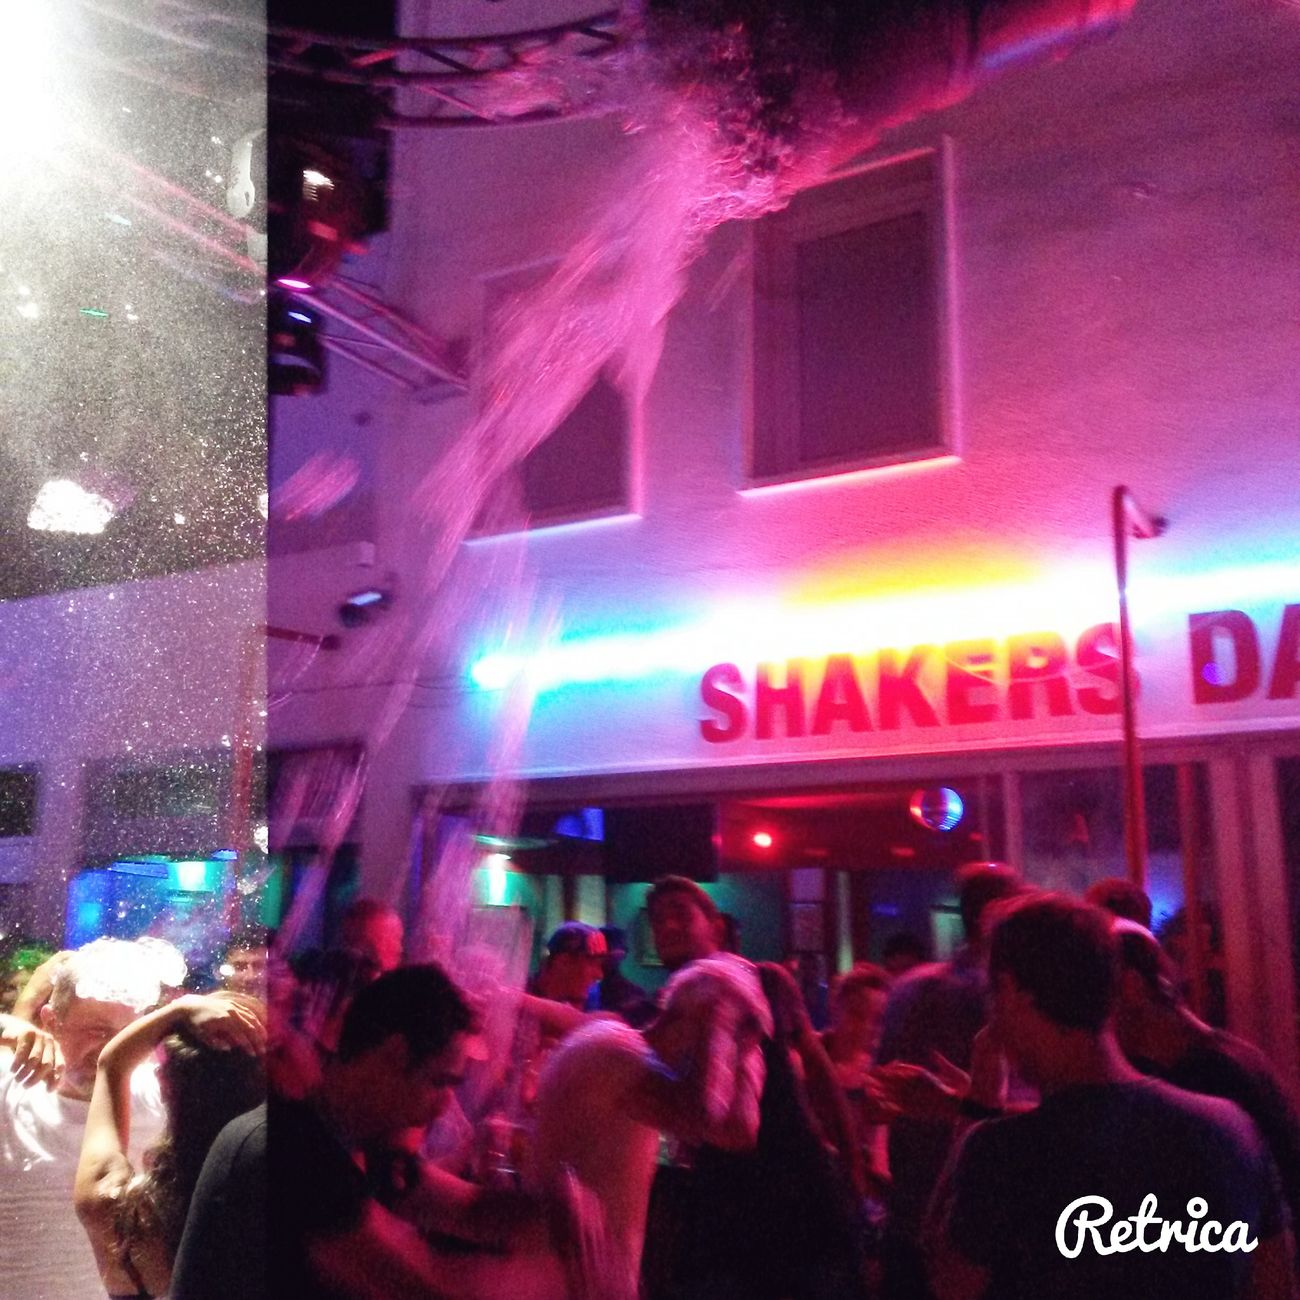 Shekars Dance Bar